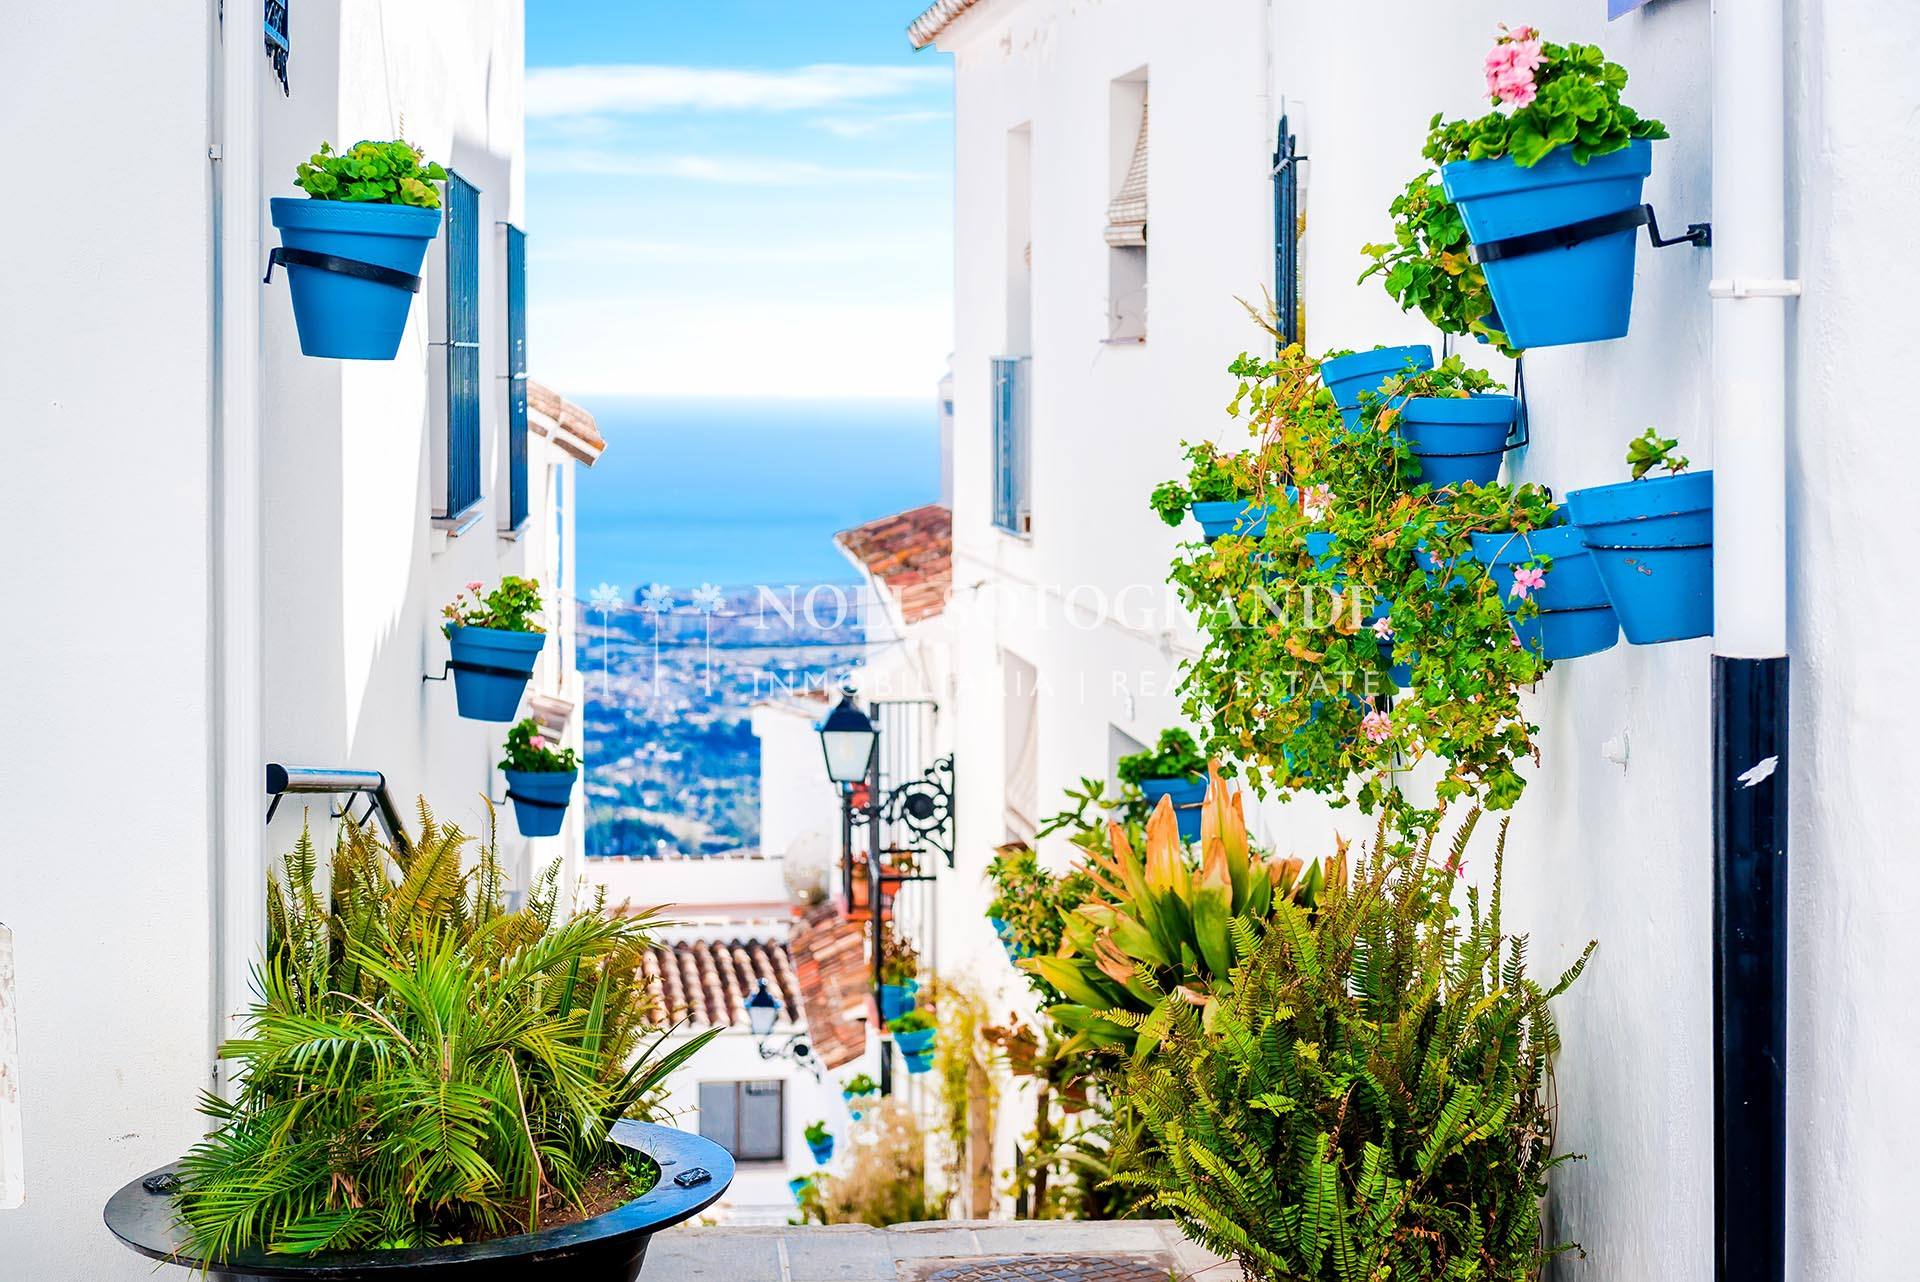 Picturesque street of Mijas with flower pots in facades